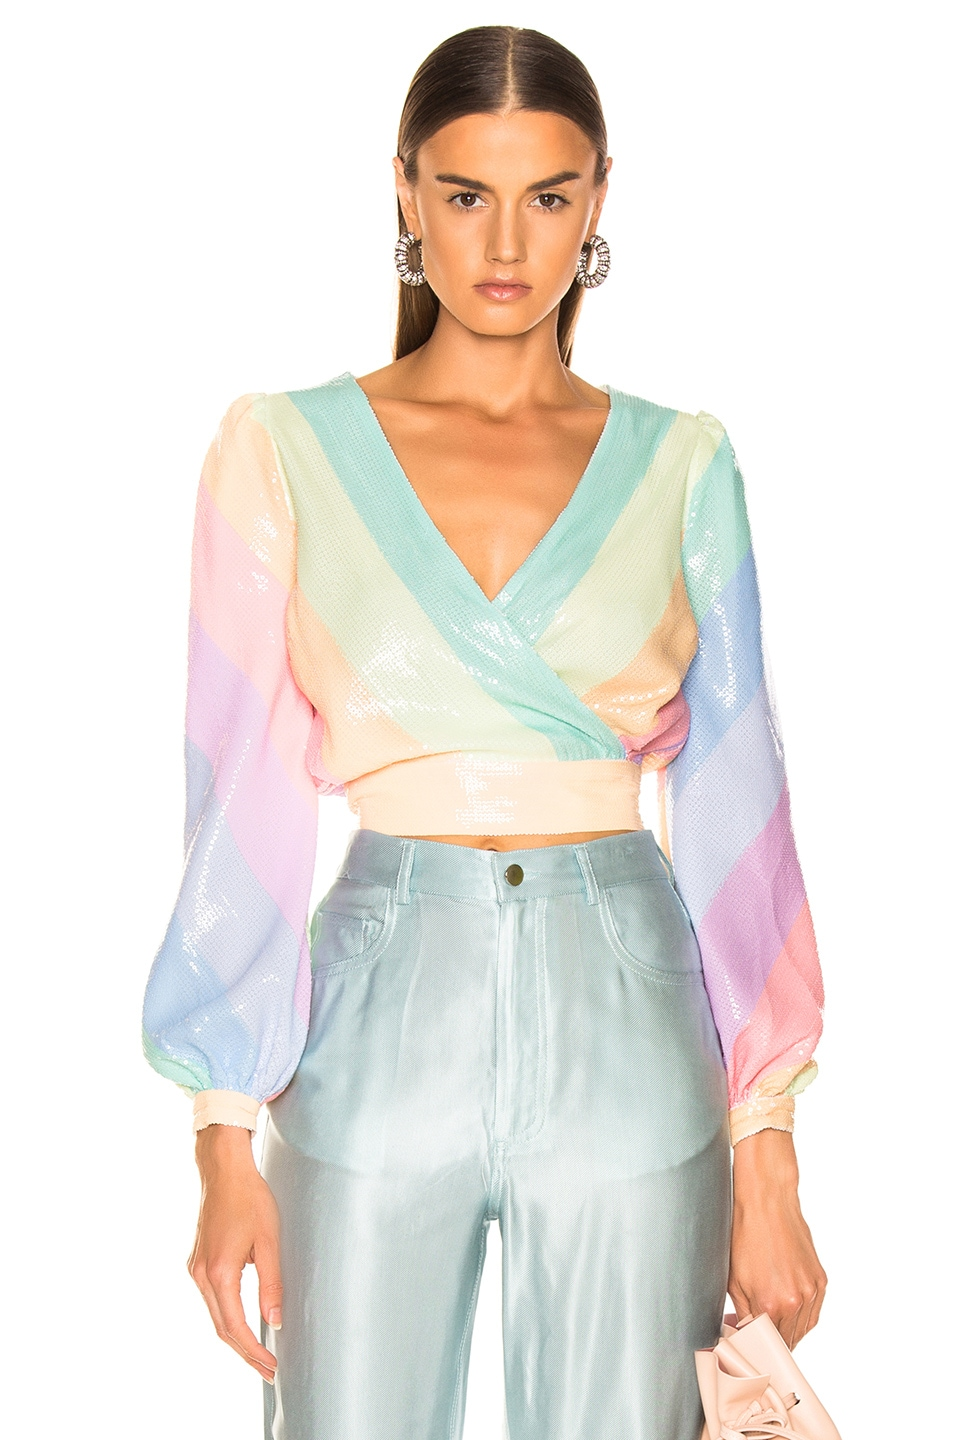 Image 1 of Olivia Rubin for FWRD Kendall Top in Pastel Rainbow